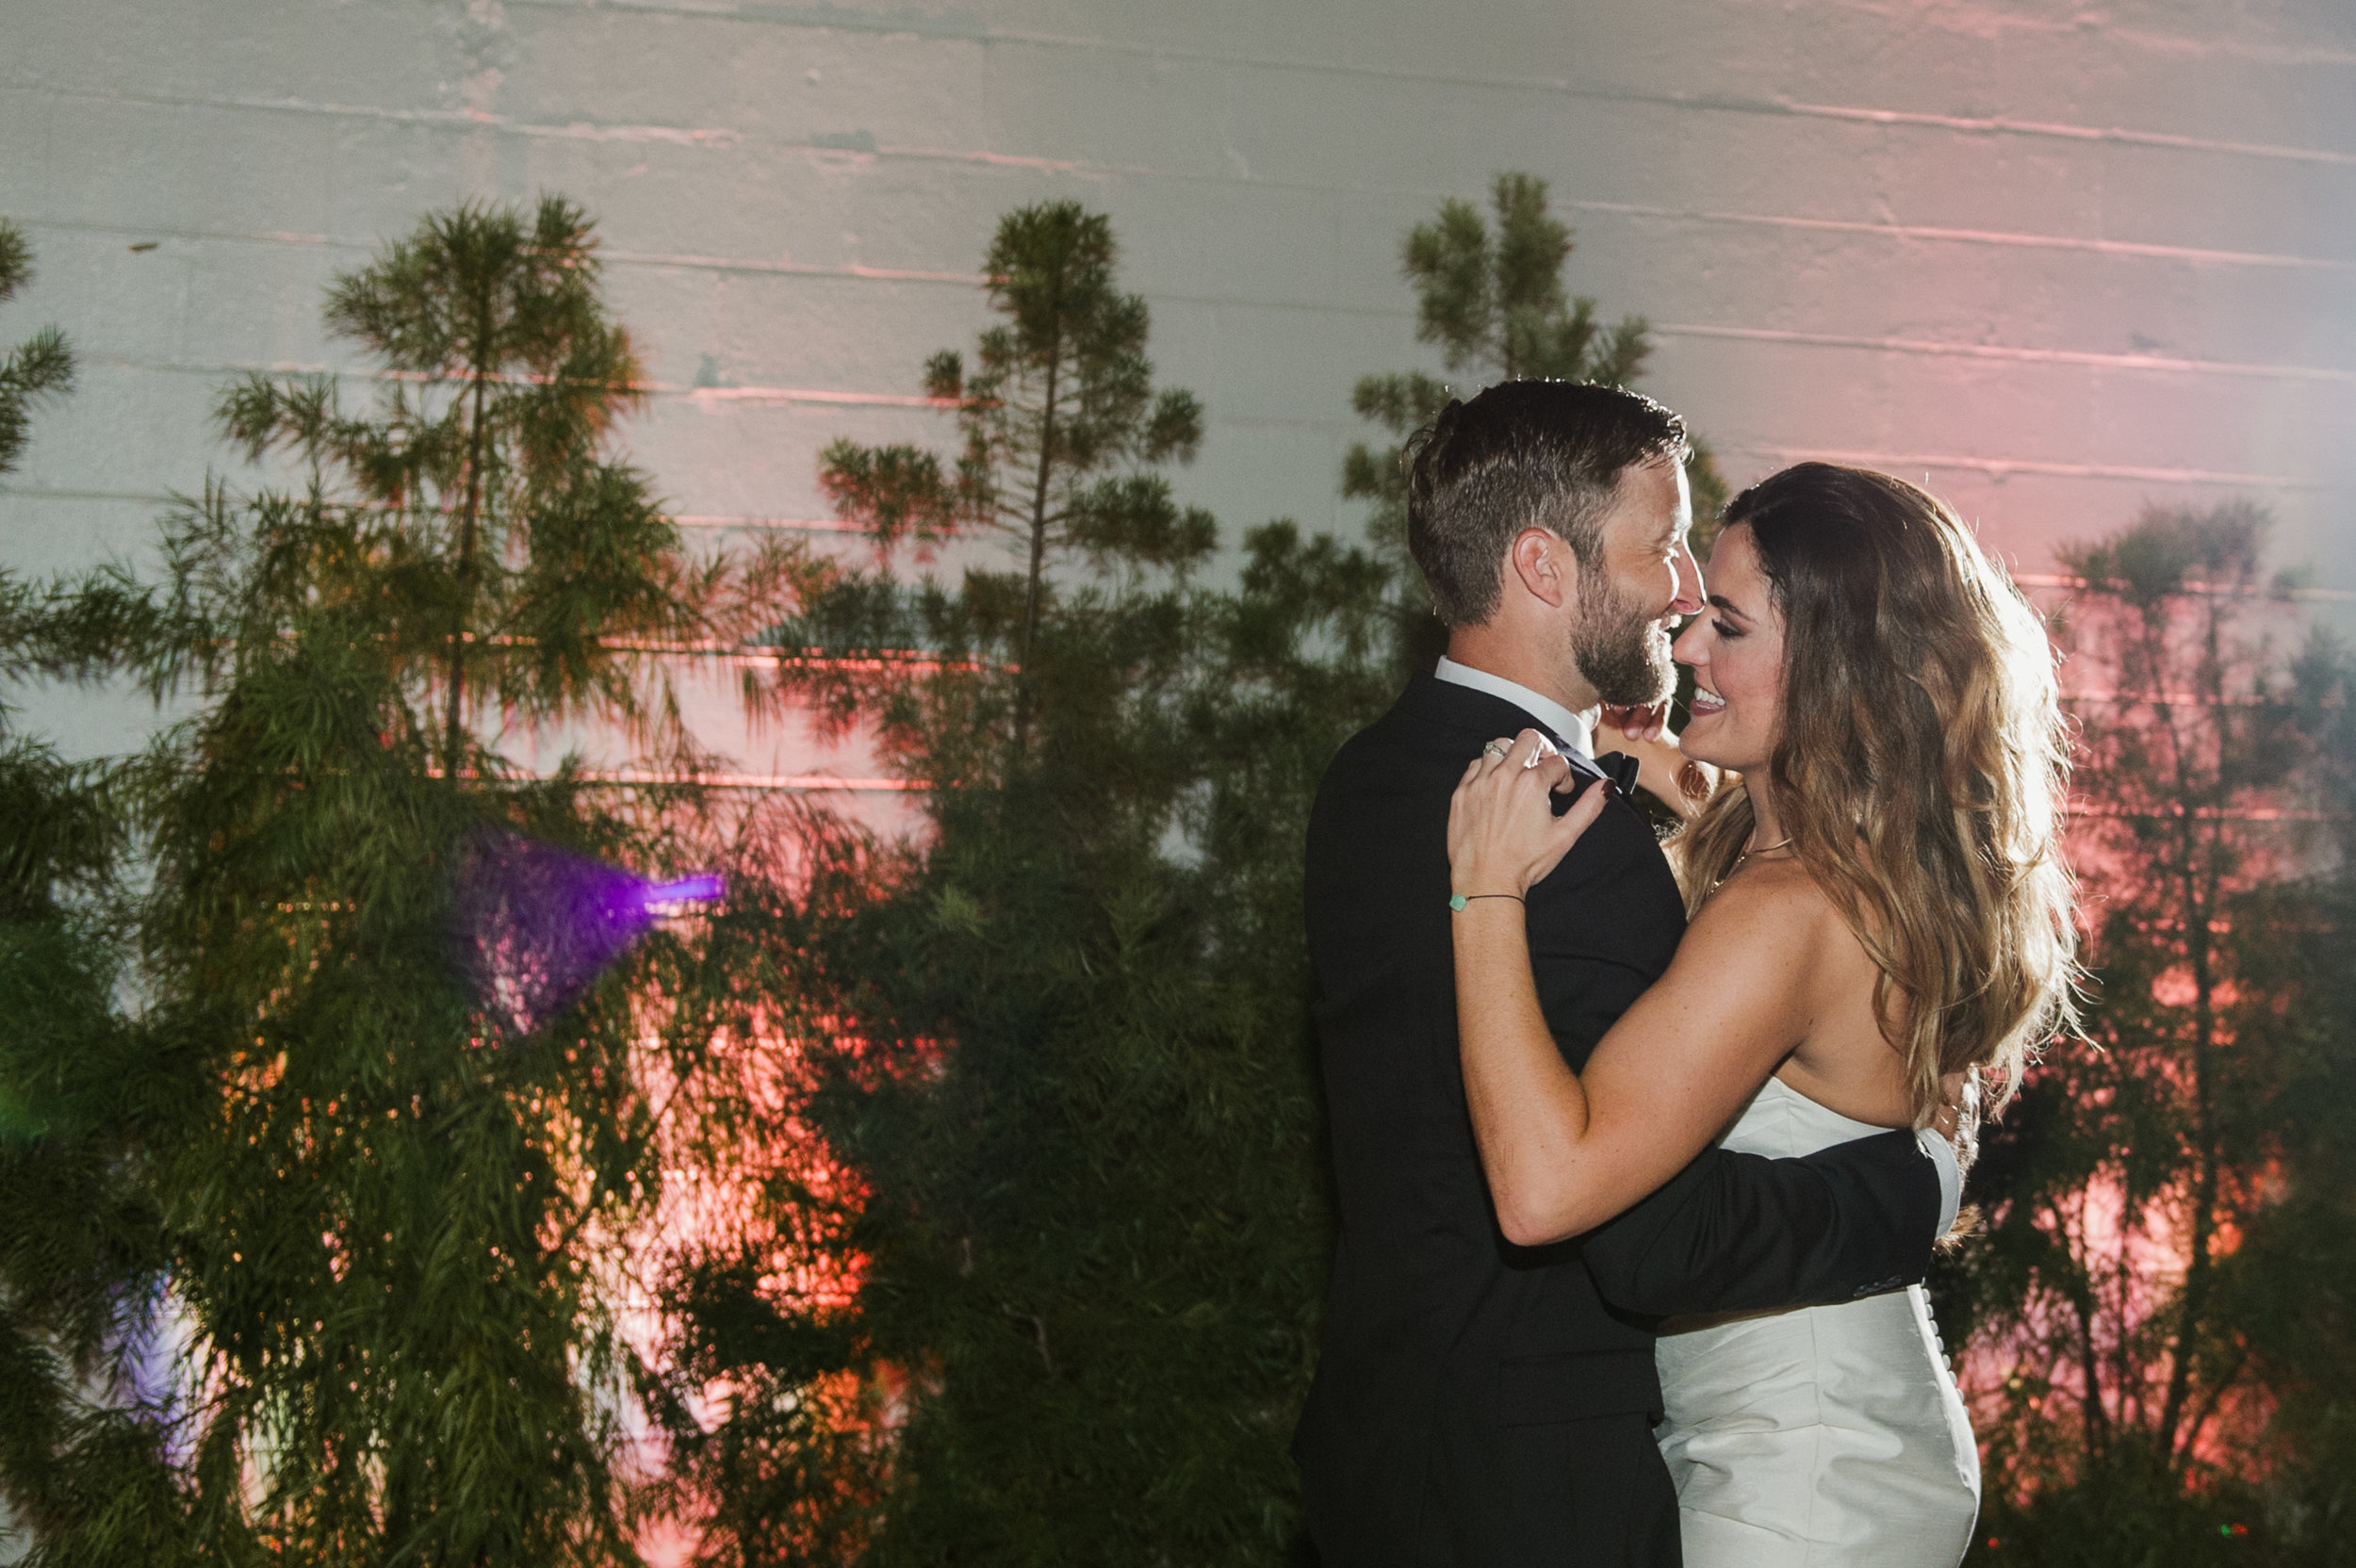 How absolutely gorgeous did this couple look dancing beneath the night sky?!